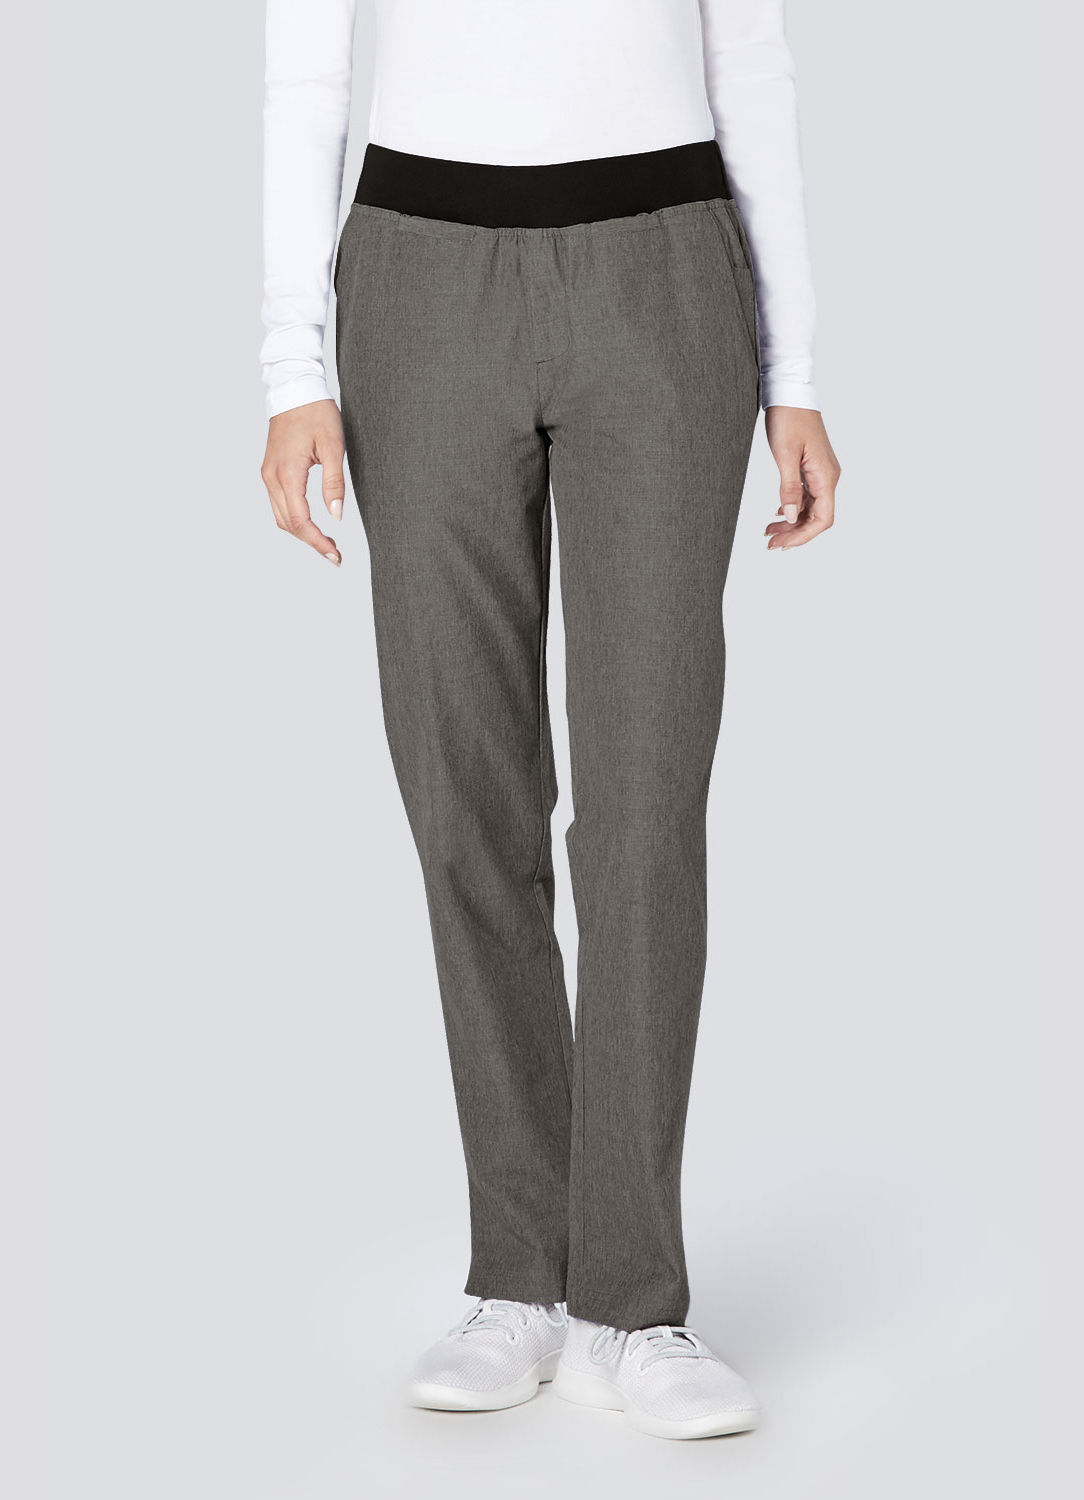 Polished Melange Tailored Skinny Pant